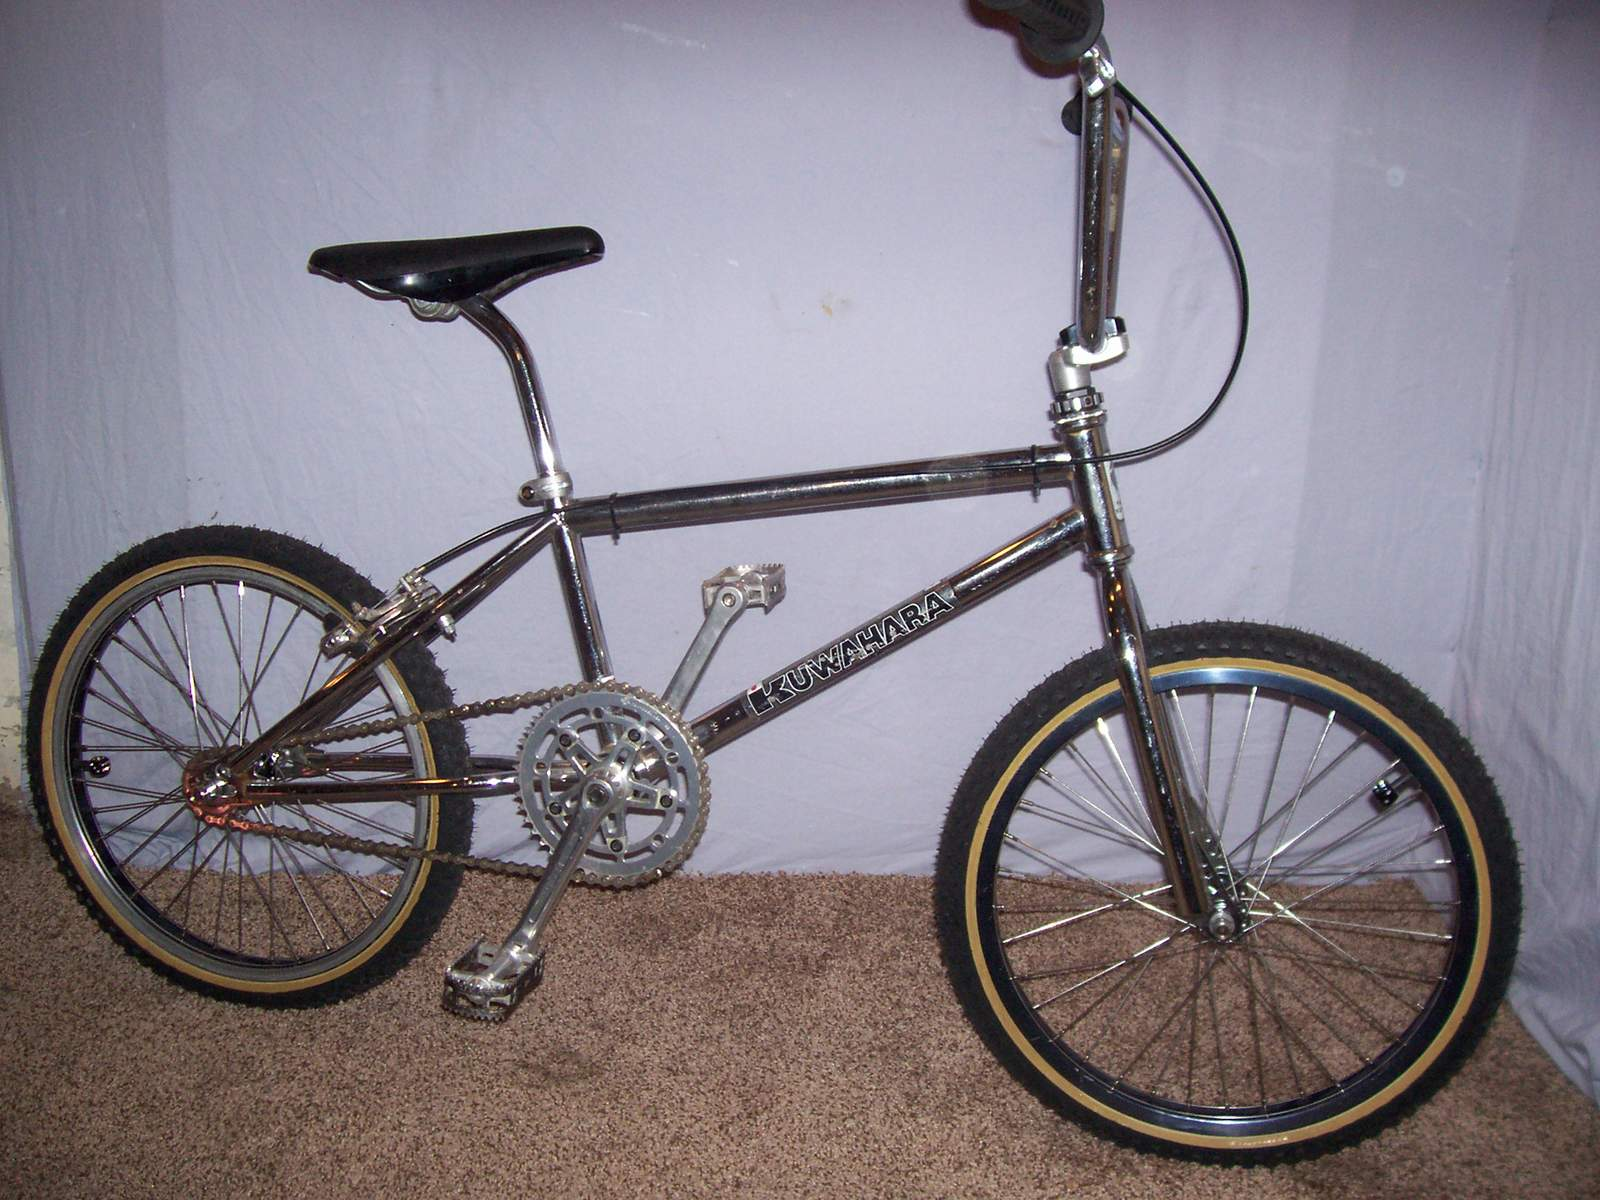 http://uploads.bmxmuseum.com/user-images/61851/101_063559ece91418.jpg